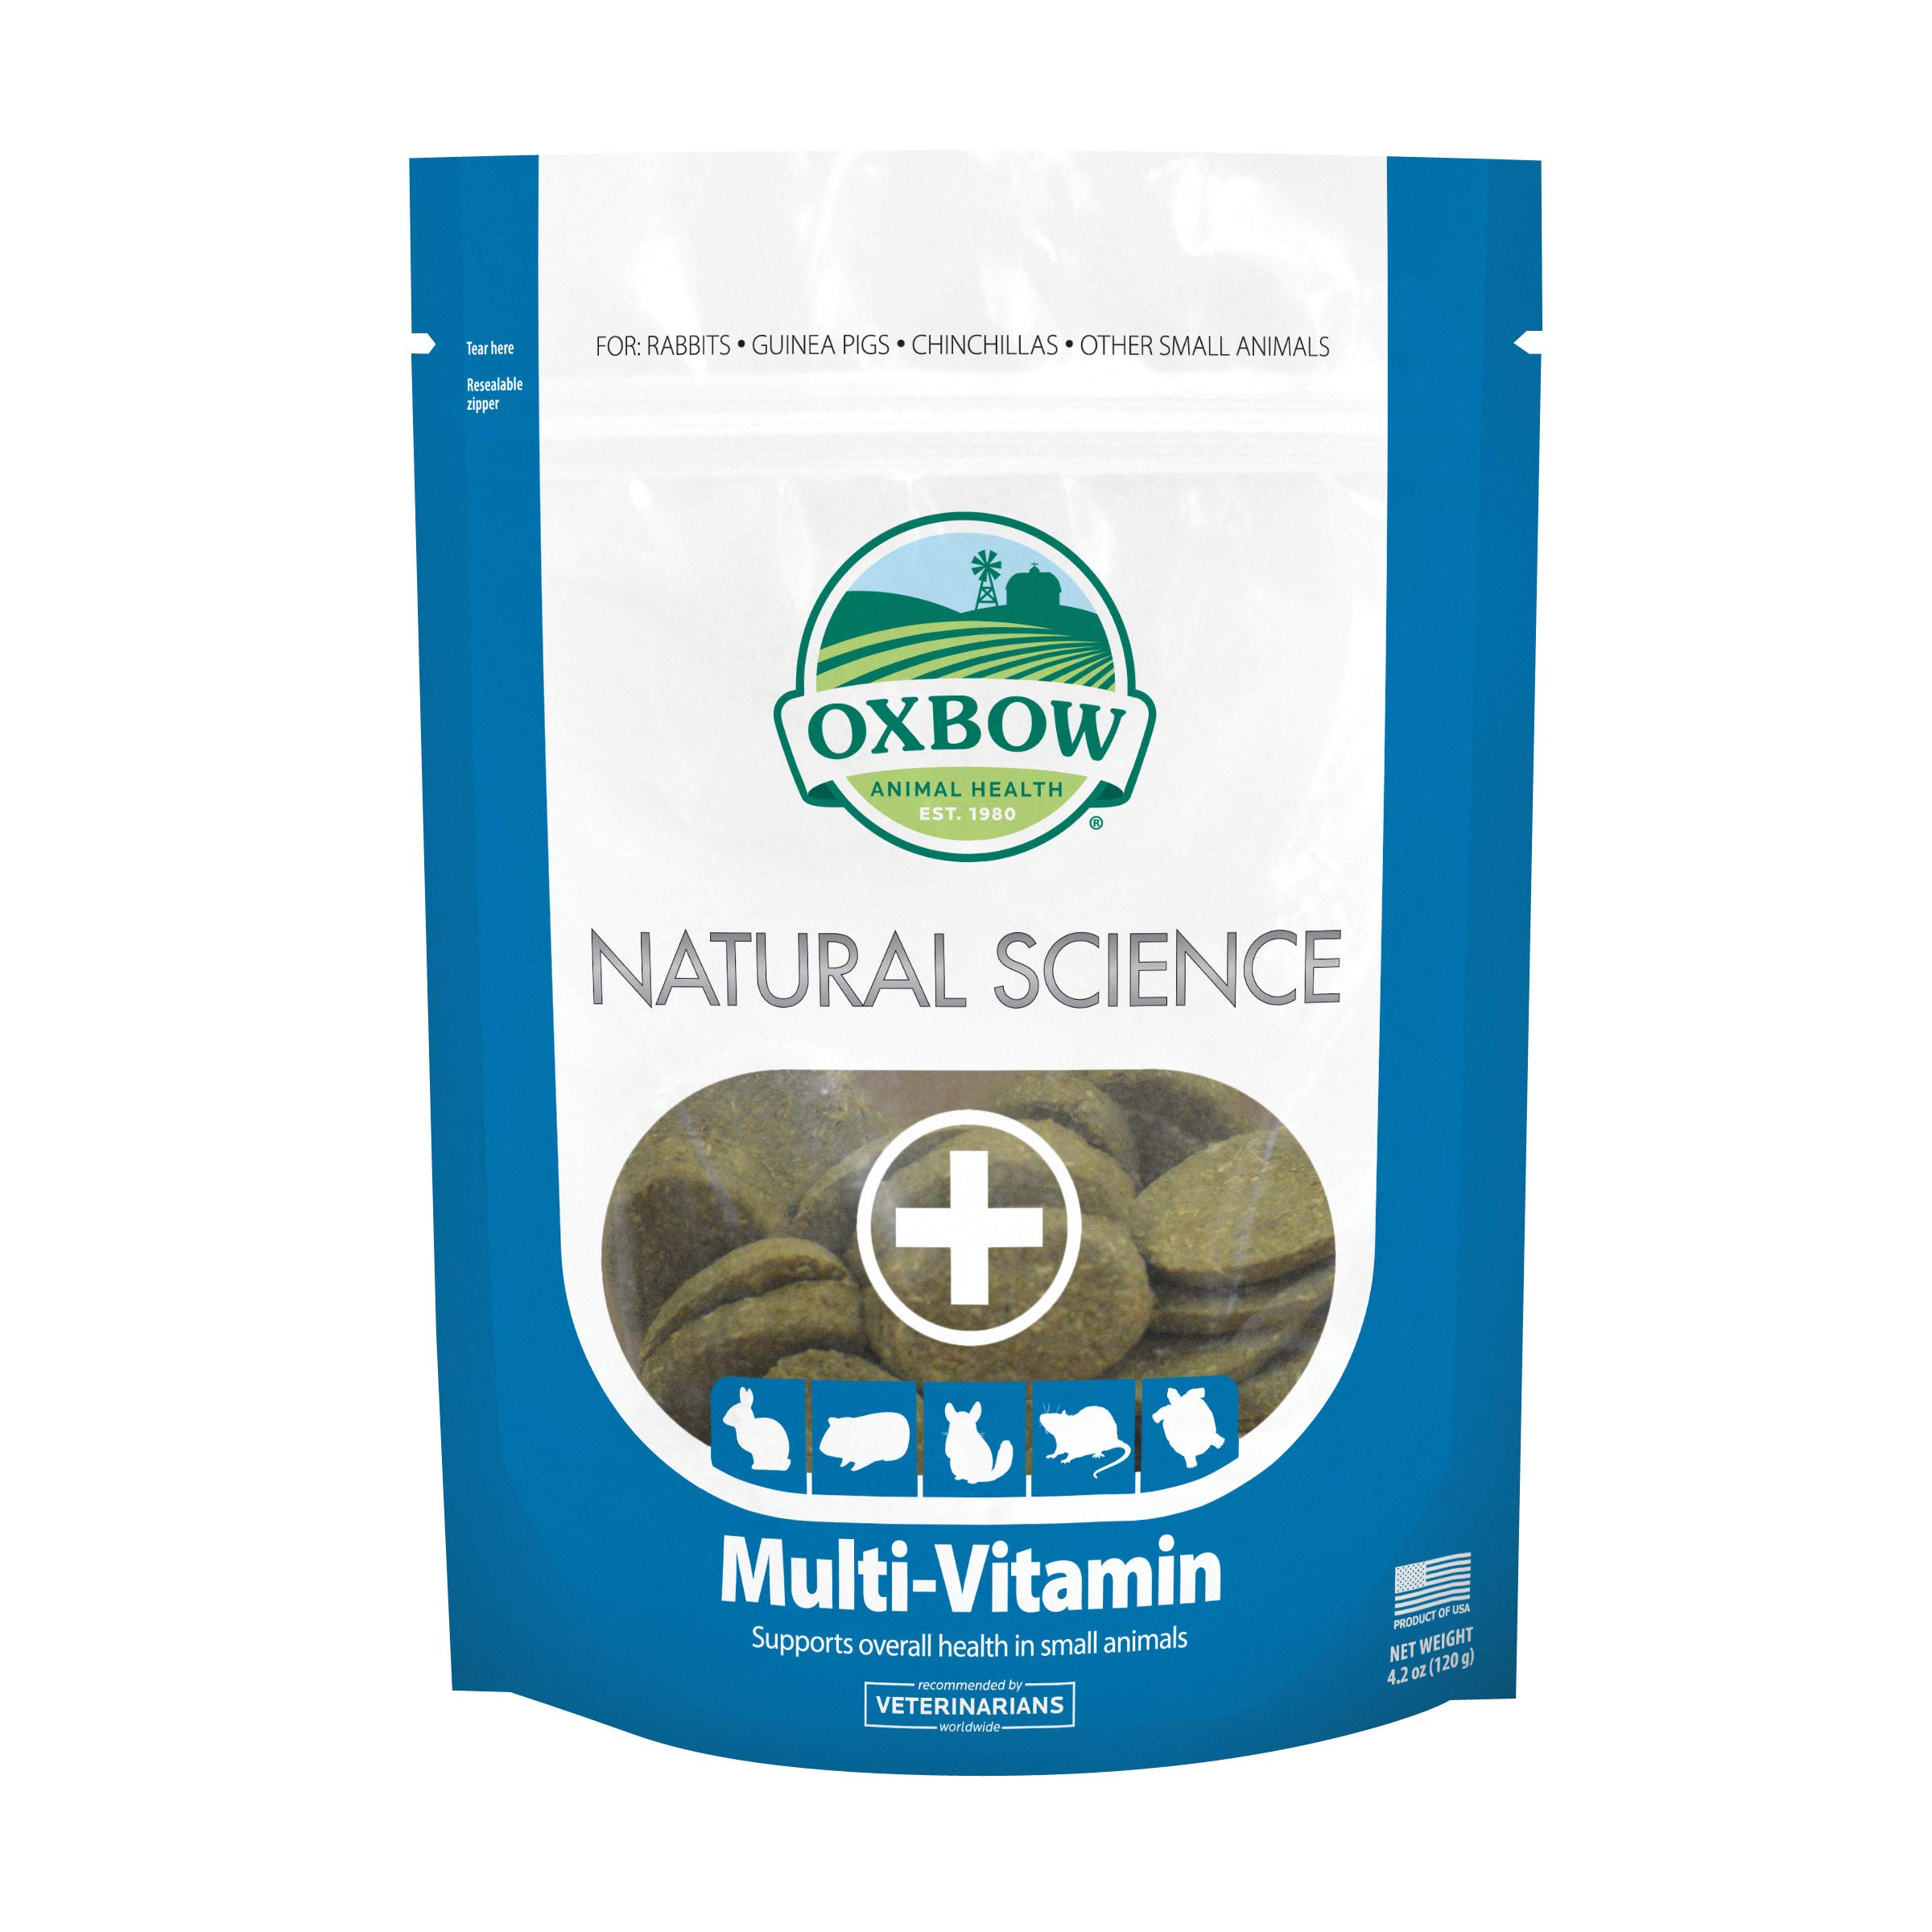 Oxbow Natural Science Multivitamin - Essential Vitamins & Omega 3 and 6 Fatty Acids for Small Animals, 4.2 oz.